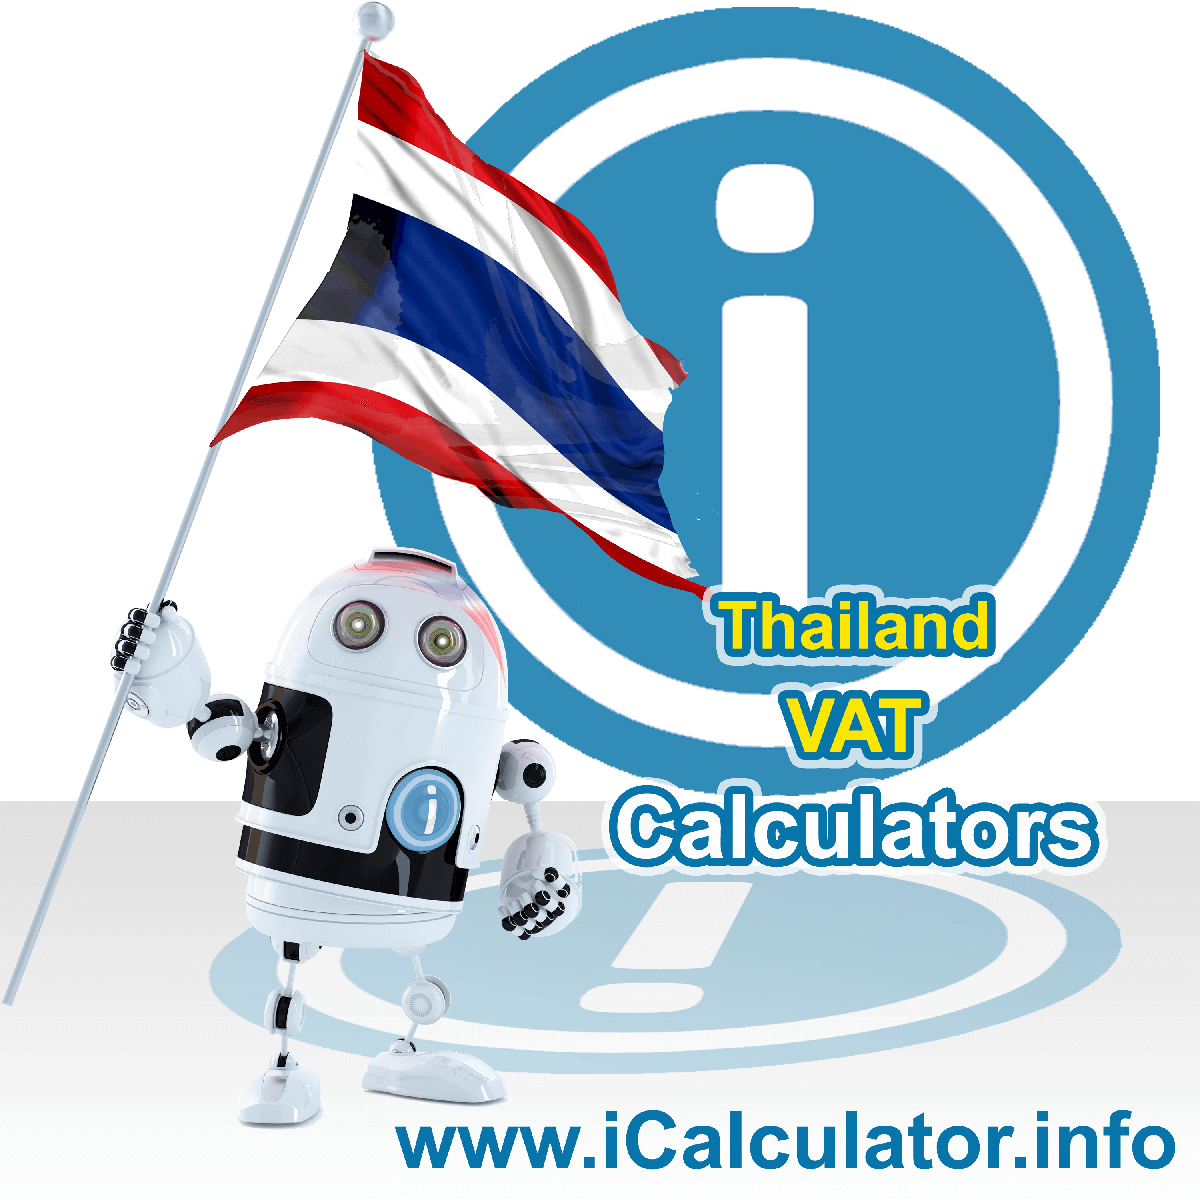 Thailand VAT Calculator. This image shows the Thailand flag and information relating to the VAT formula used for calculating Value Added Tax in Thailand using the Thailand VAT Calculator in 2021